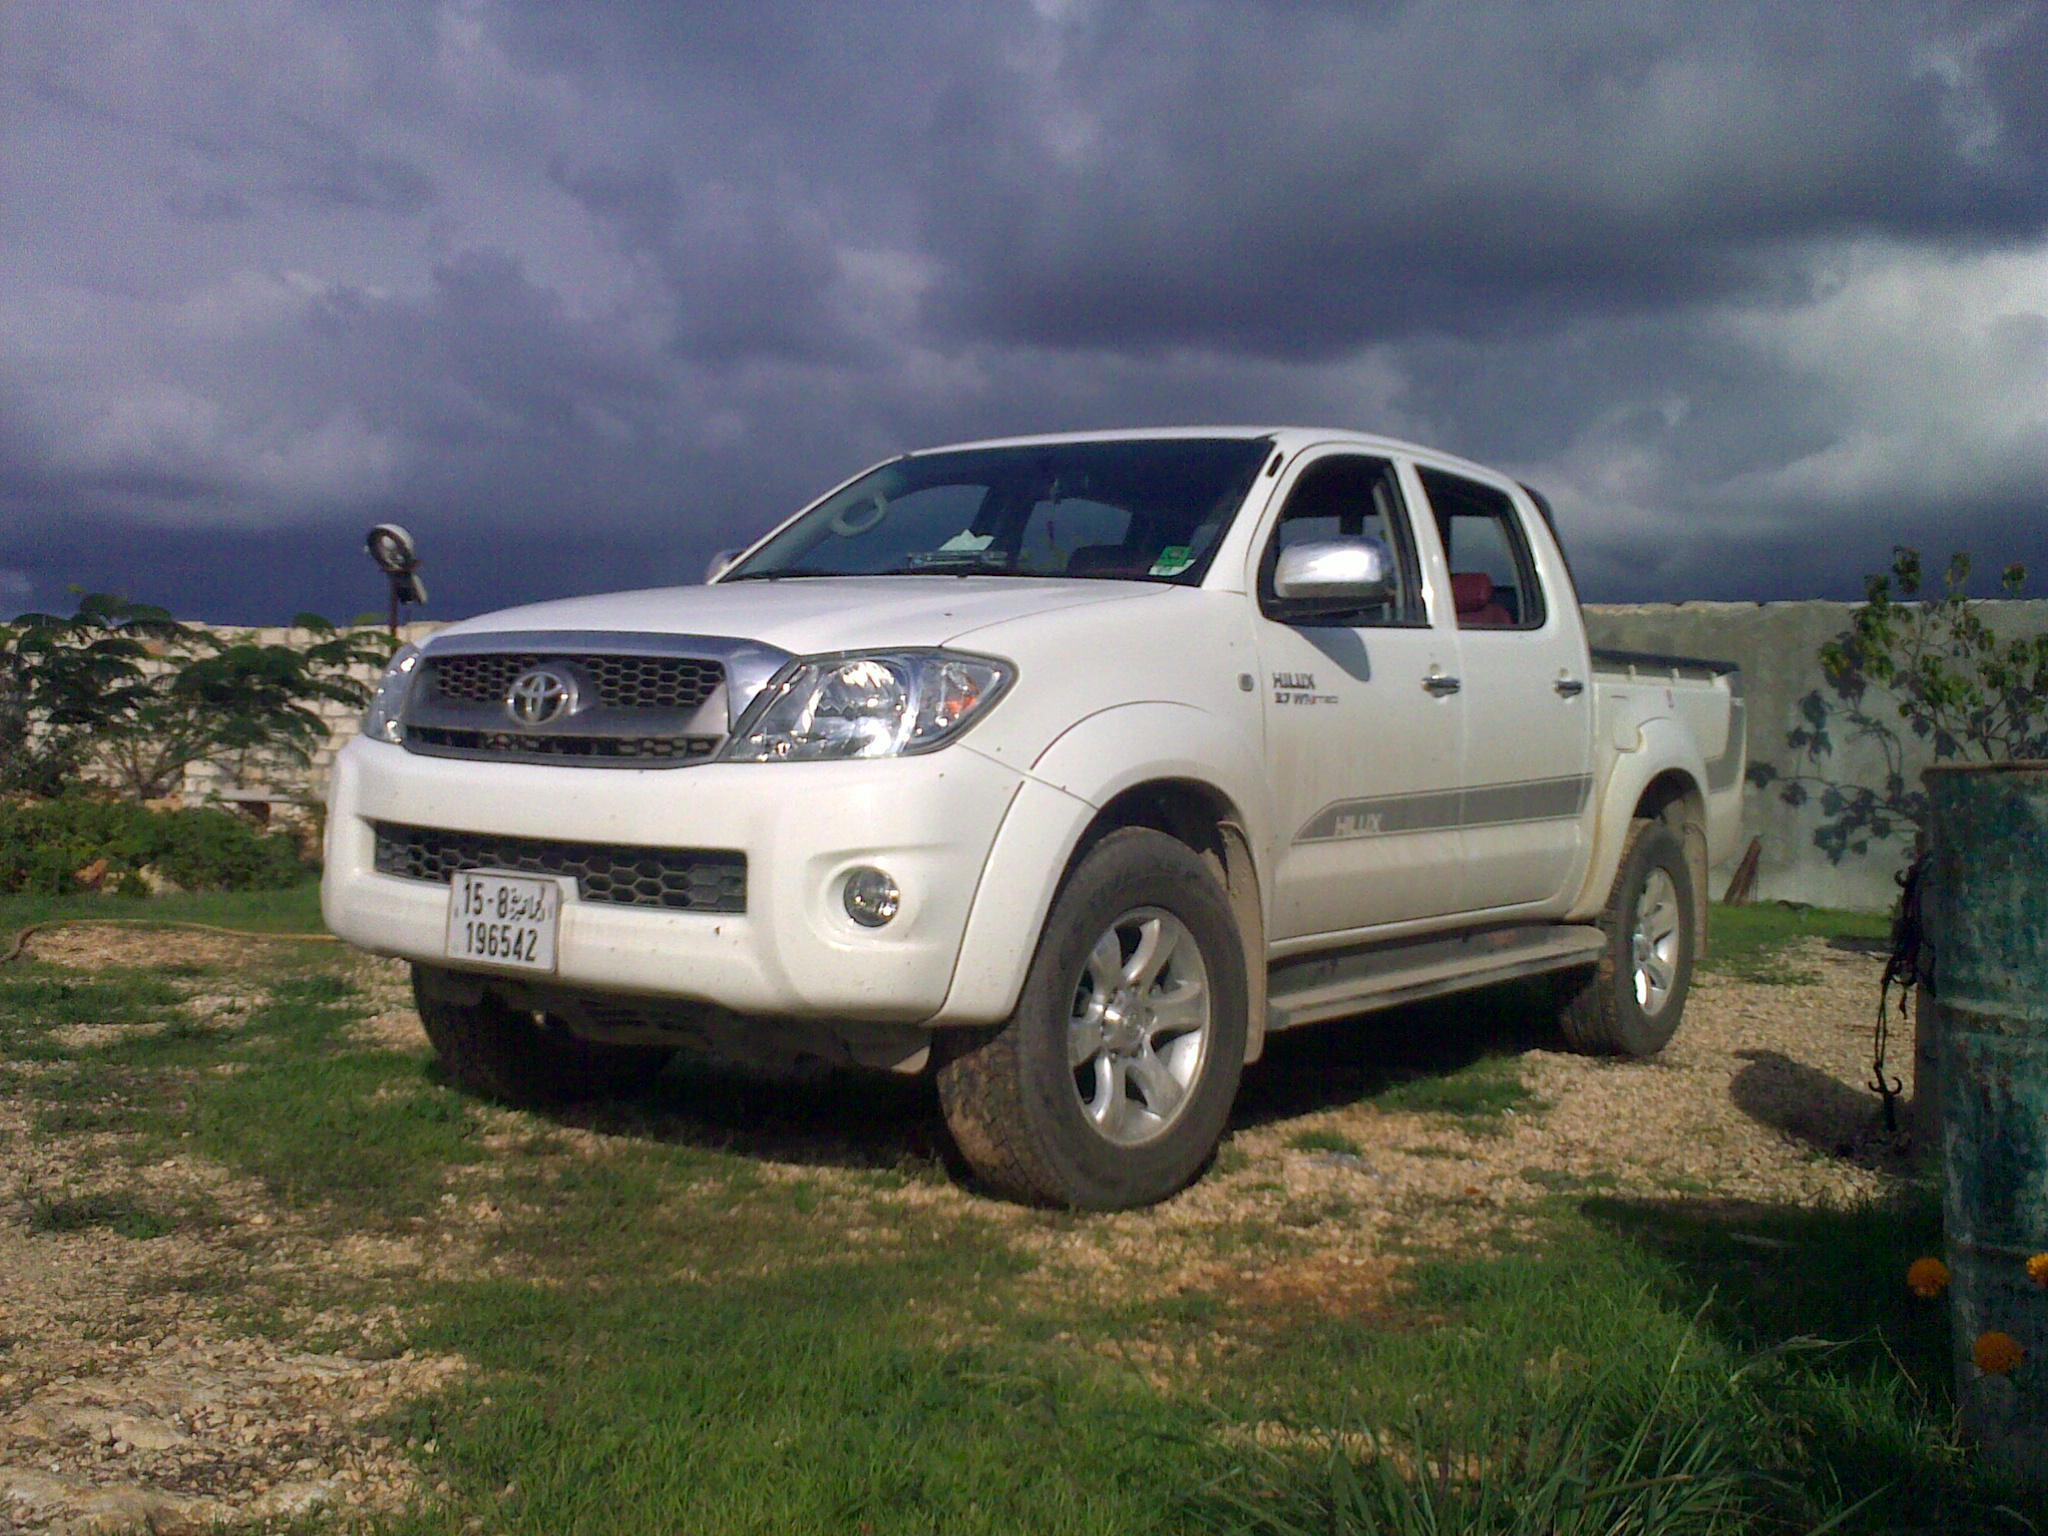 bat_night 2009 Toyota HiLux 13801940